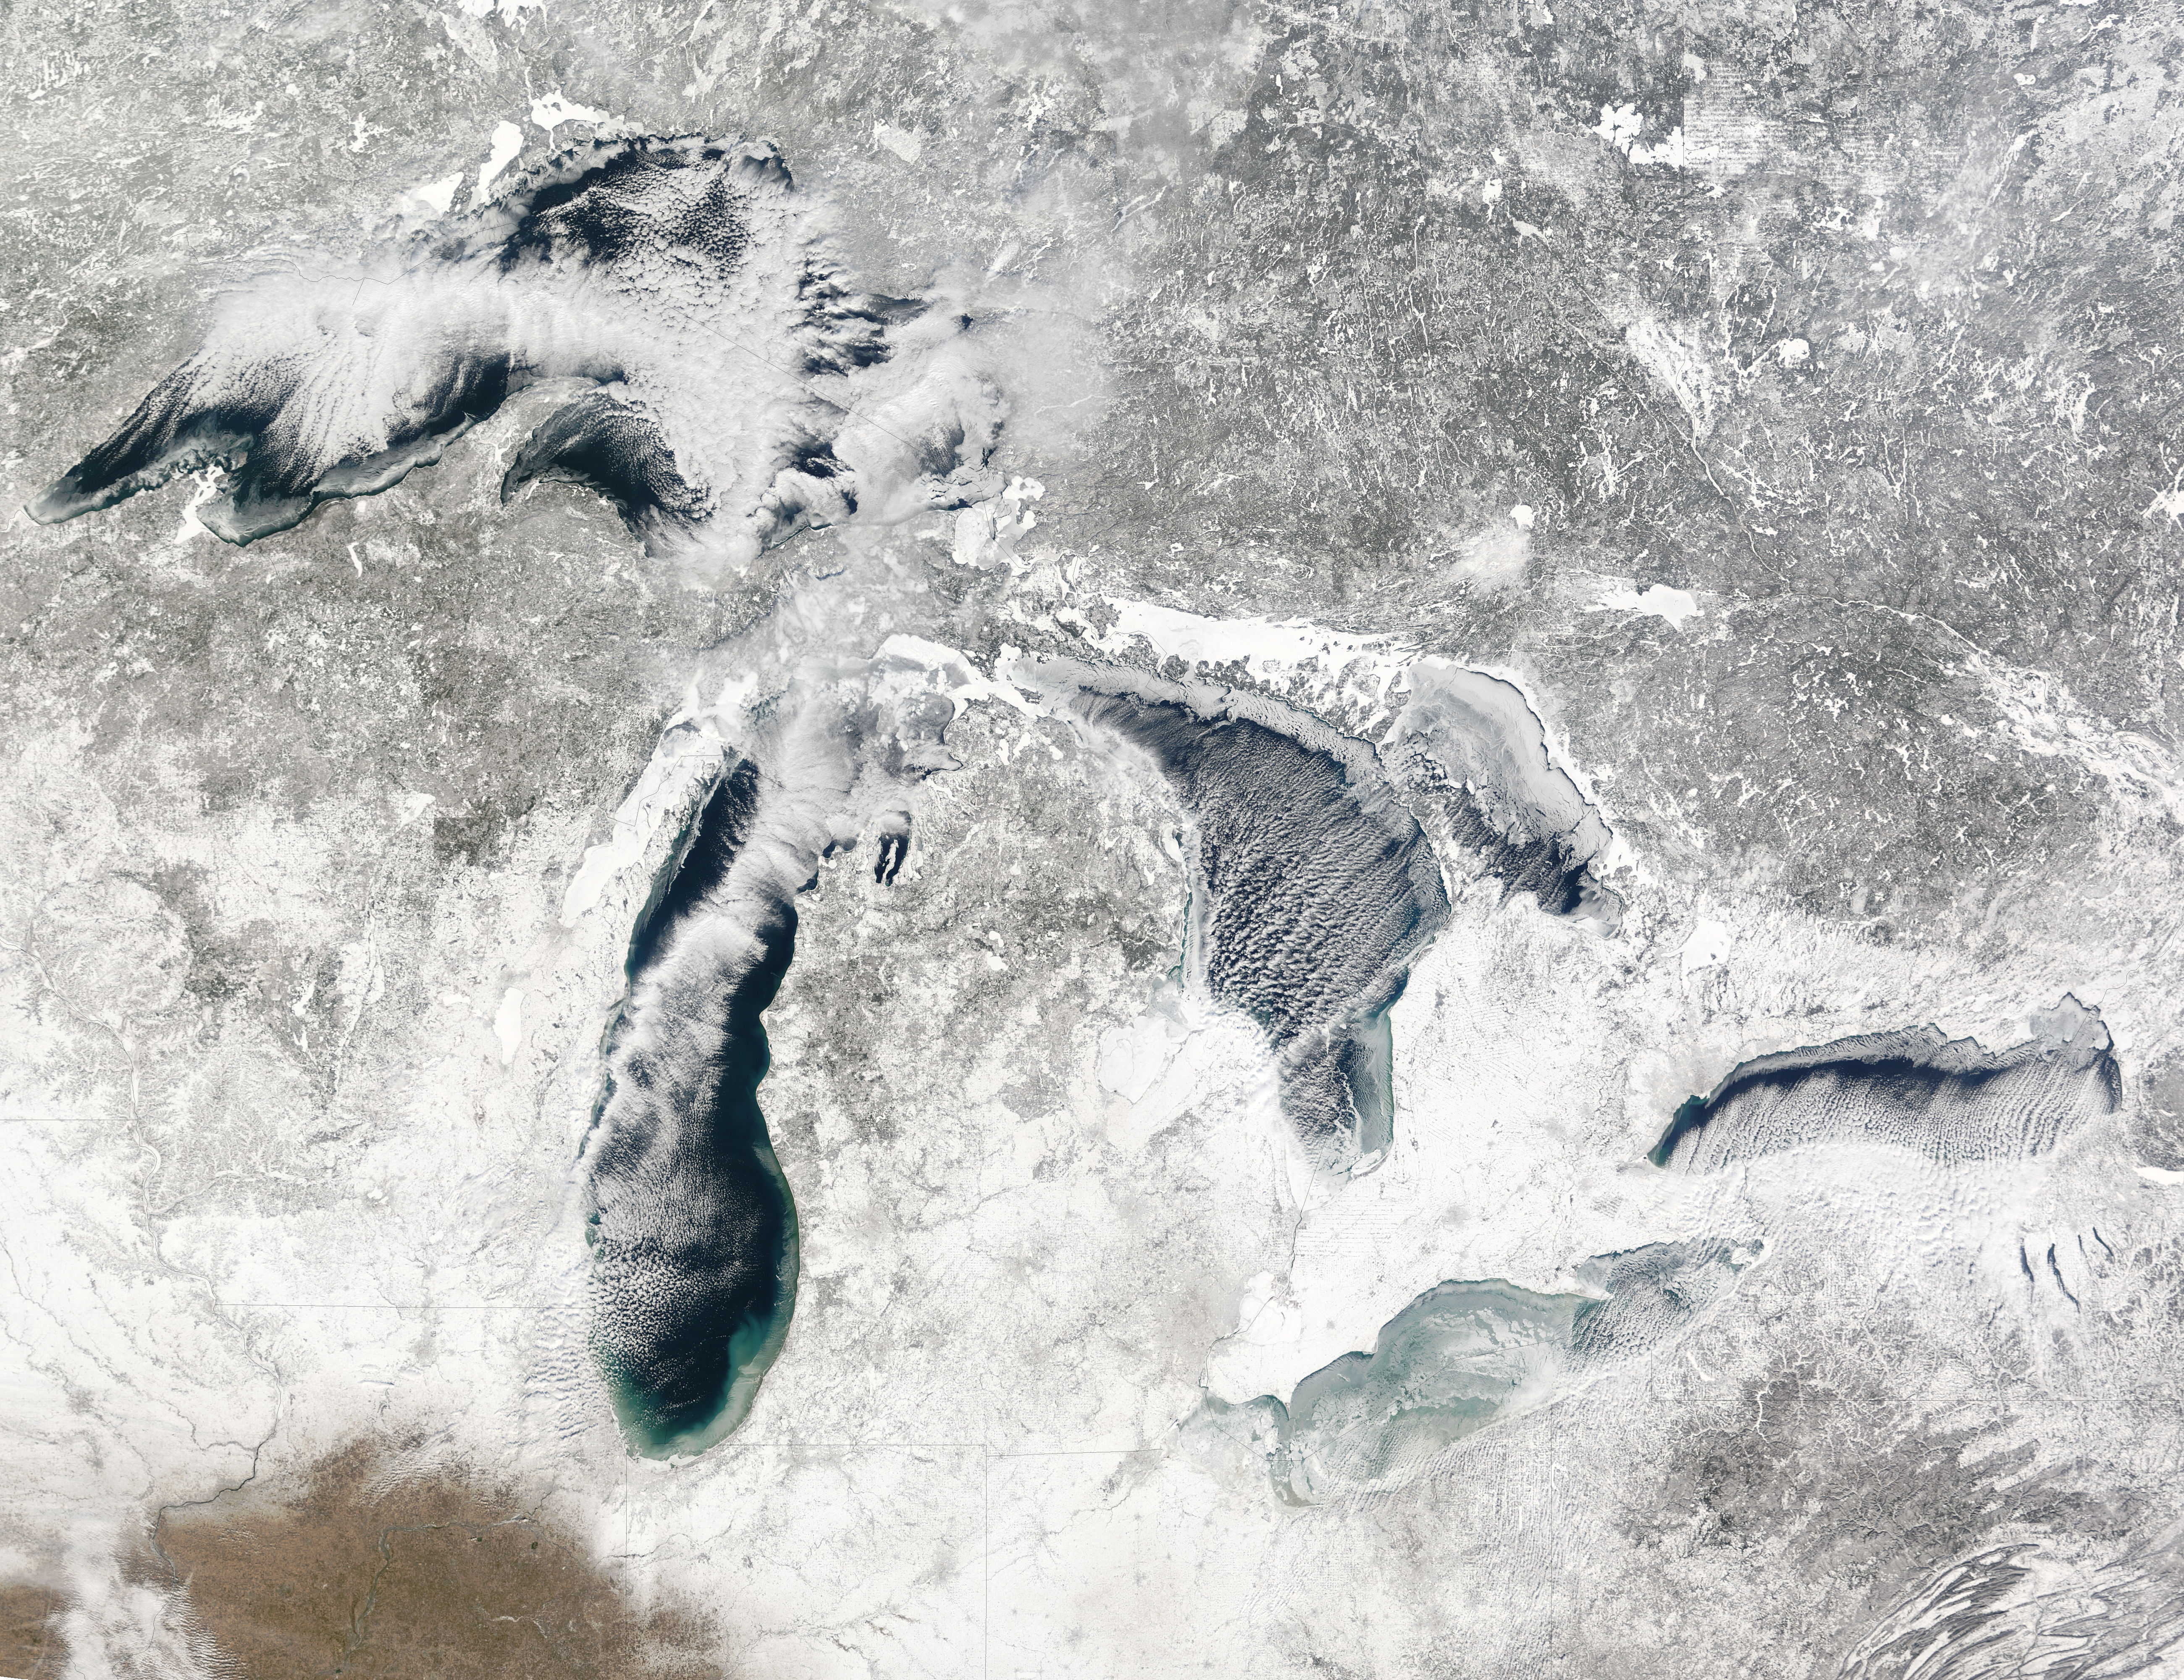 Description GreatLakes.A2005027.1635.250m.jpg